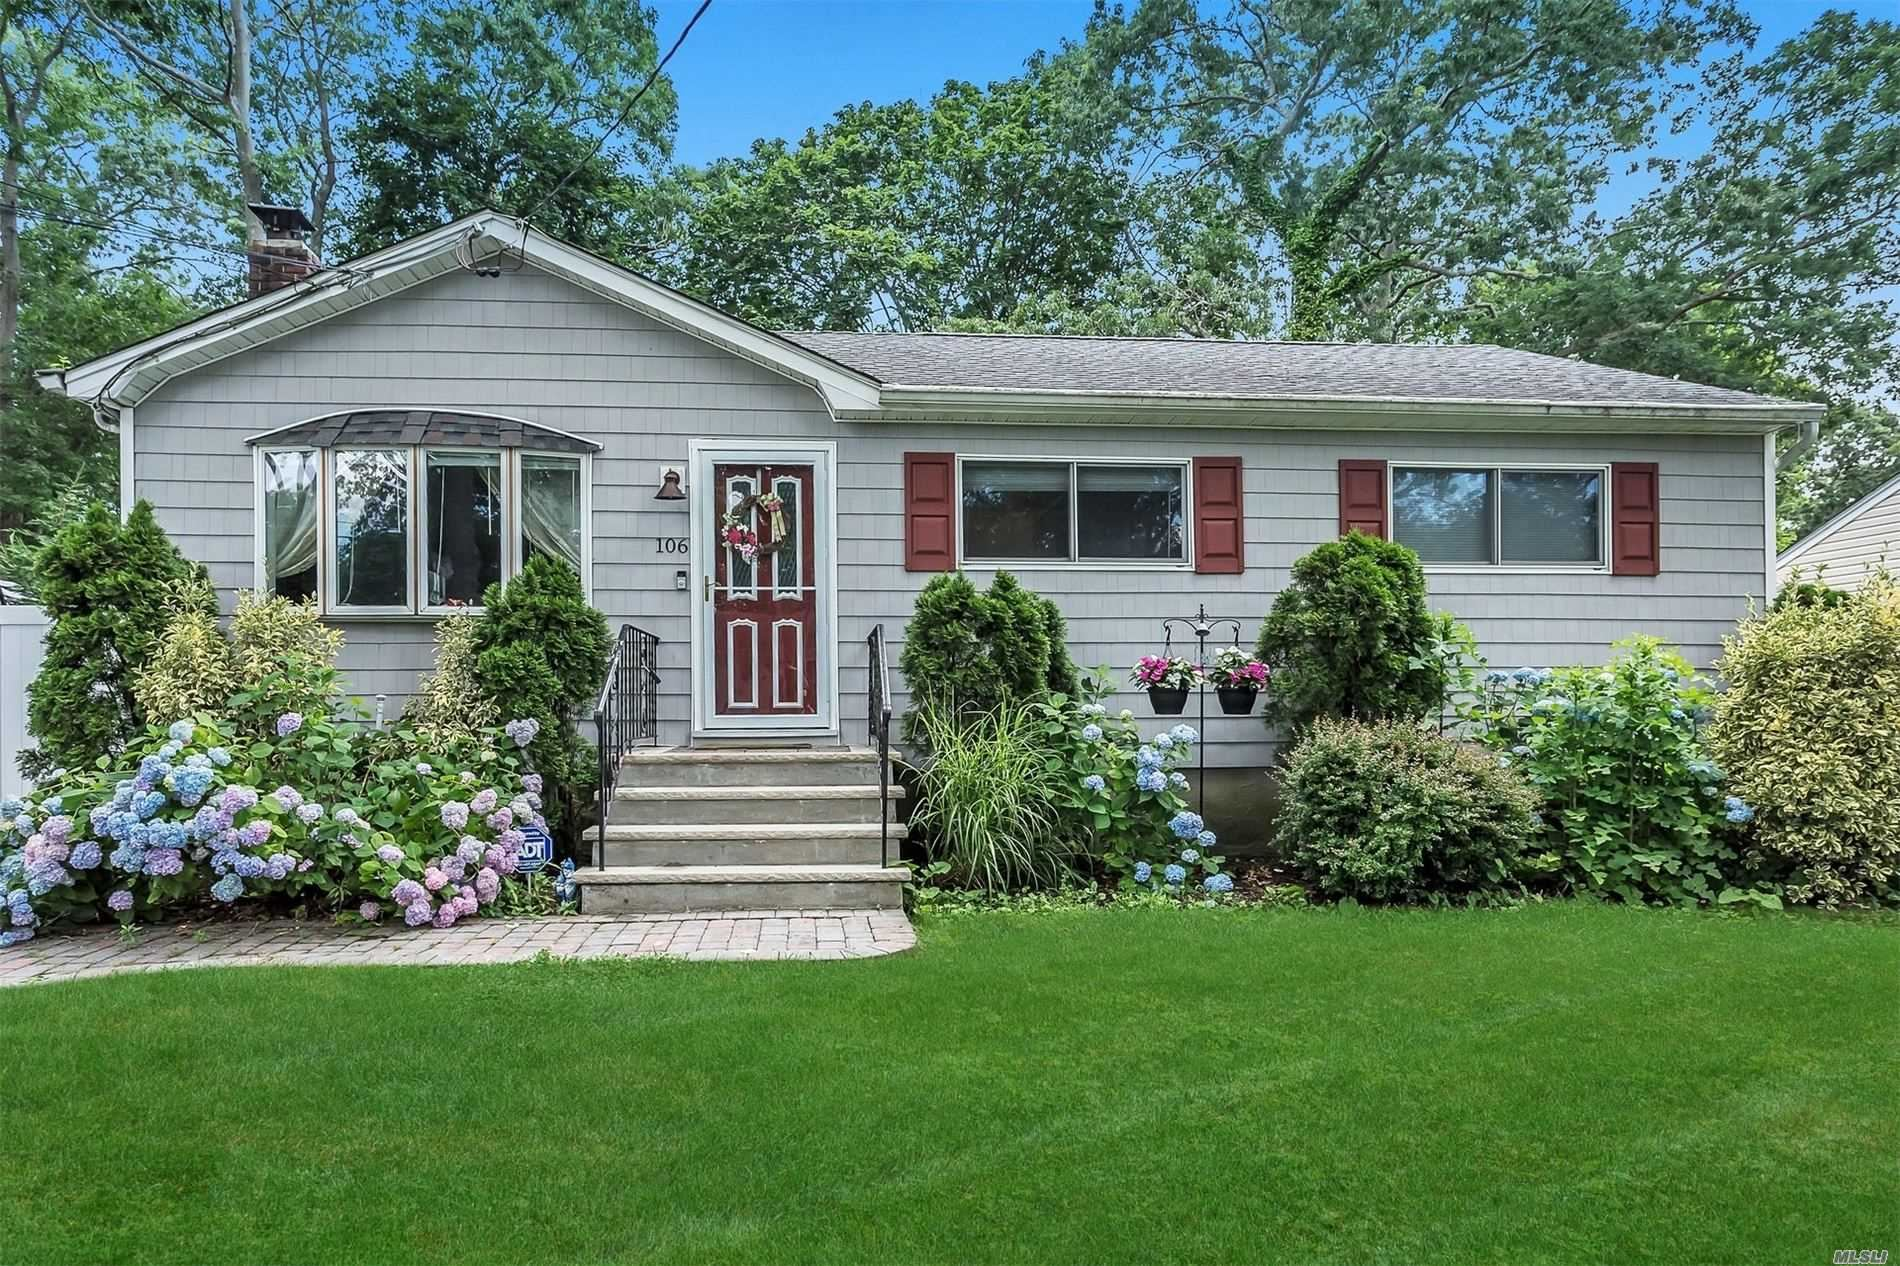 106 Ohls Street, Patchogue, NY 11772 - MLS#: 3225067